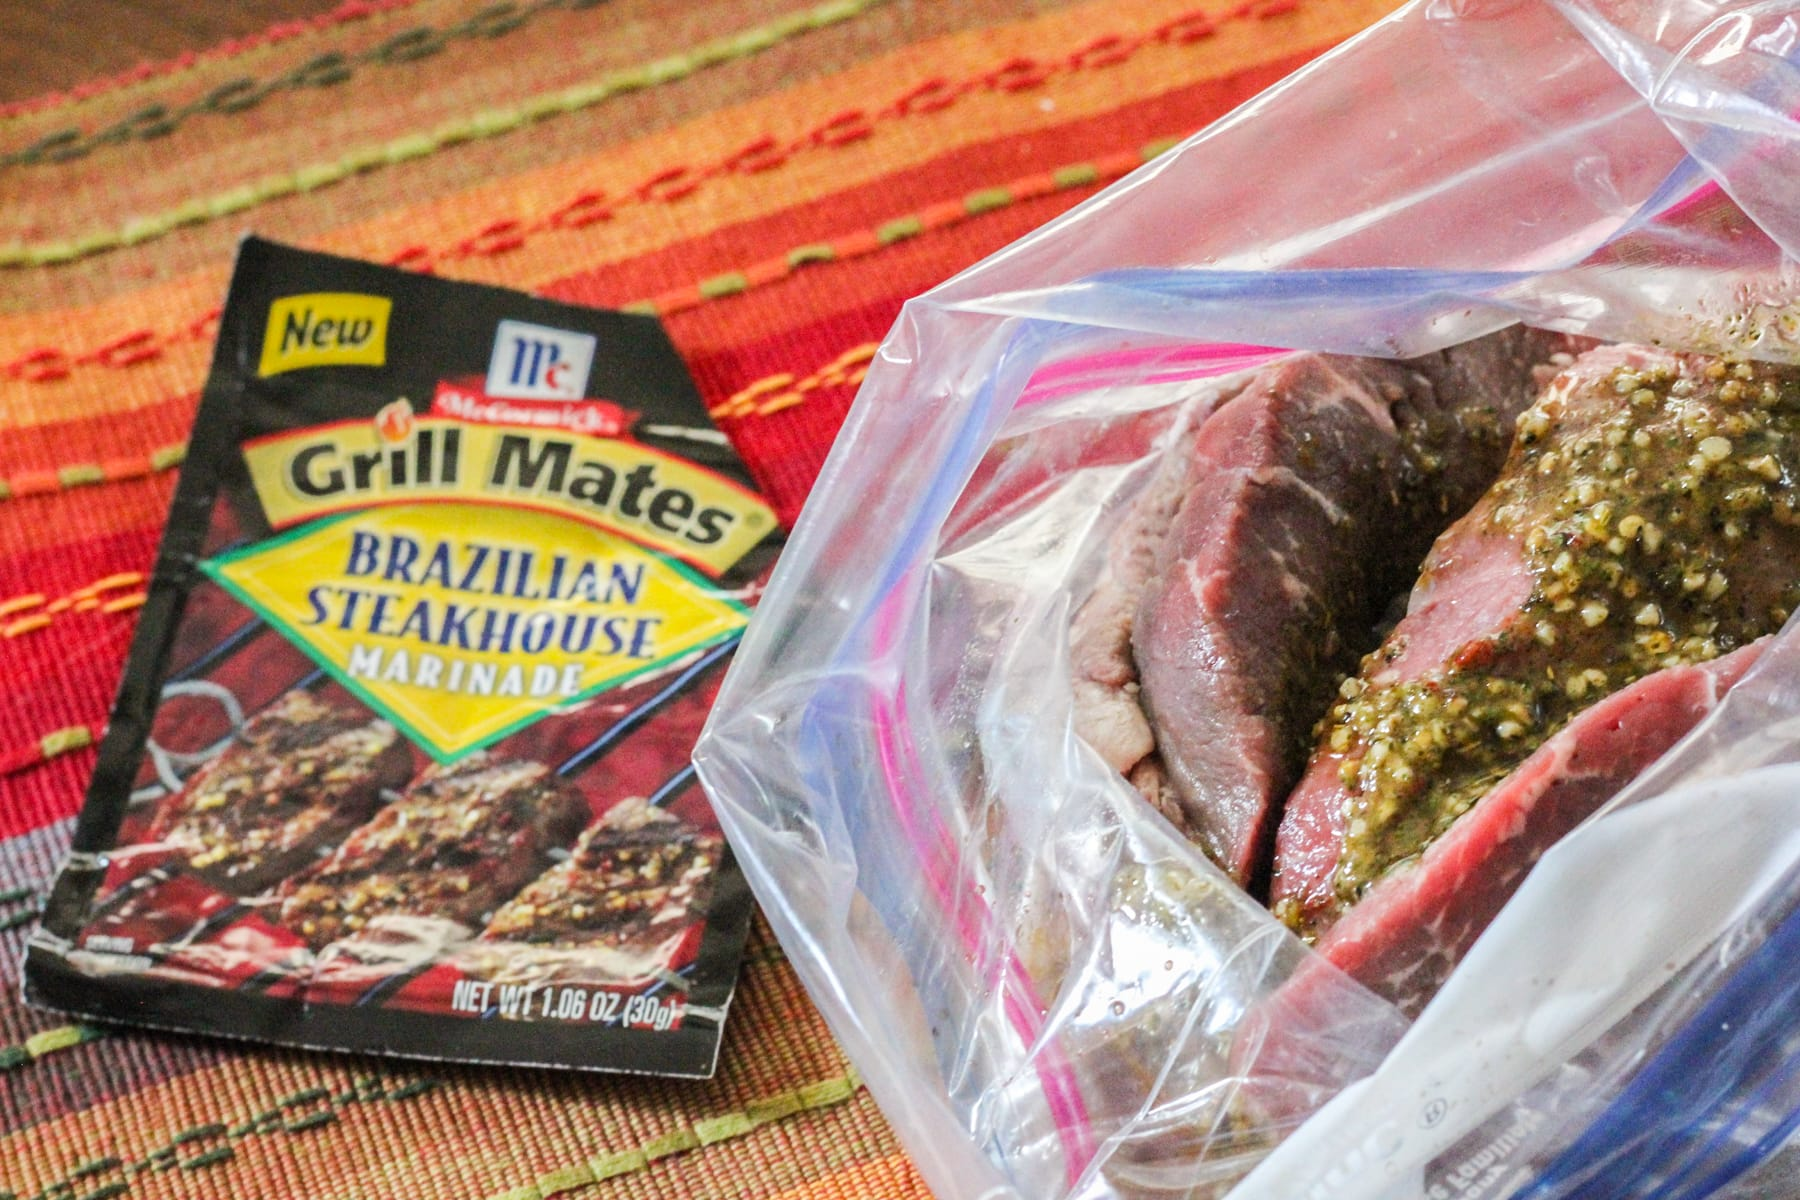 steak in a marinade bag next to a seasoning packet.